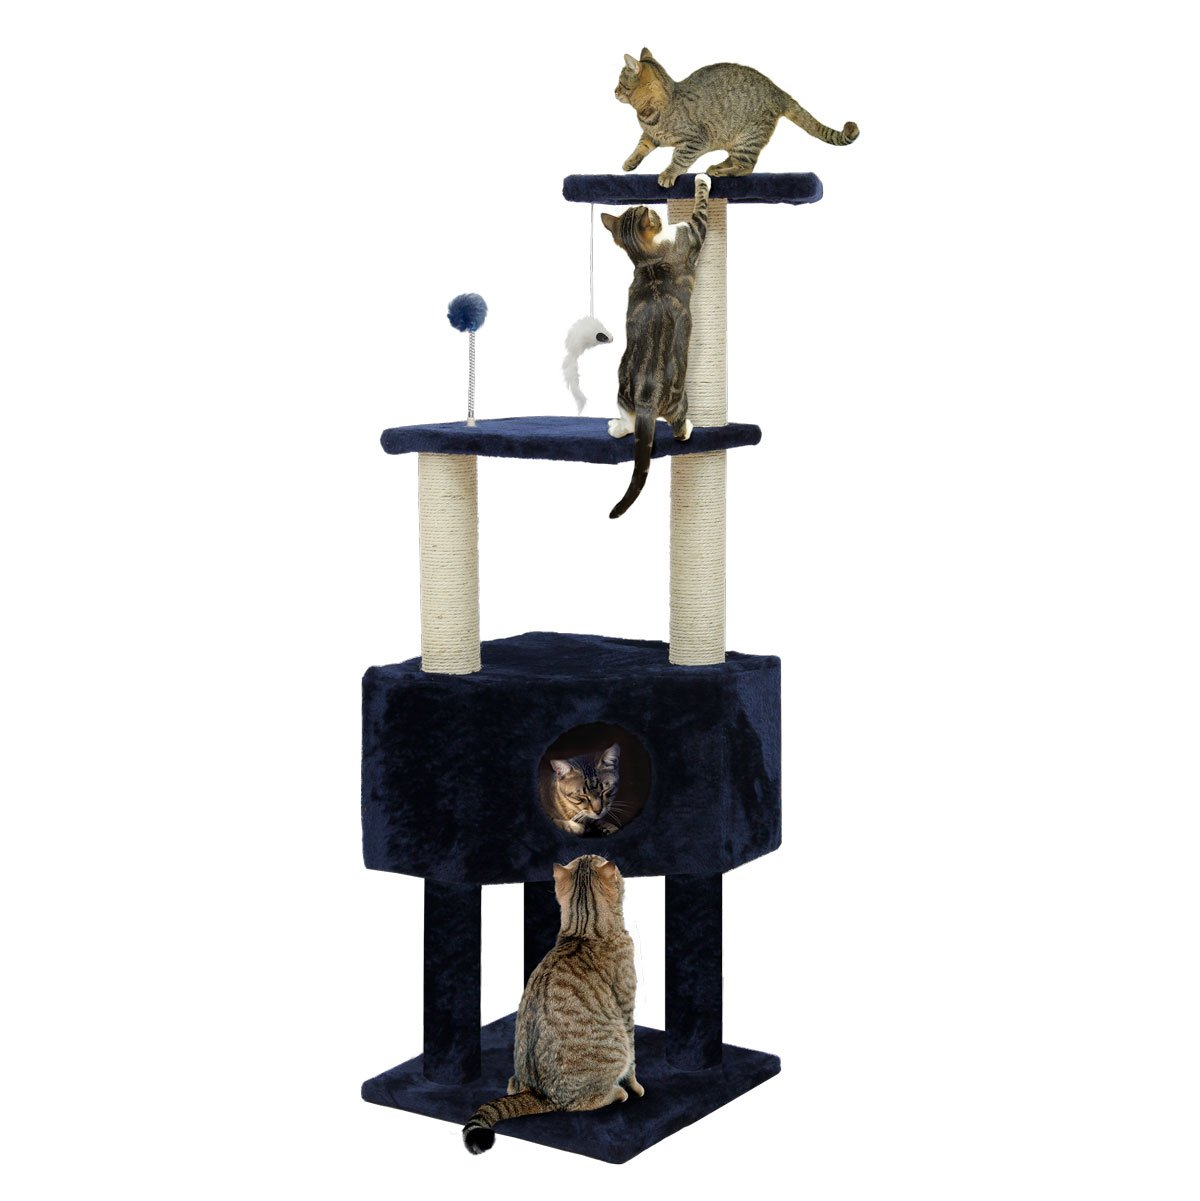 Furhaven Tiger Tough Cat Tree House Furniture for Cats and Kittens, Clubhouse Playground, Blue